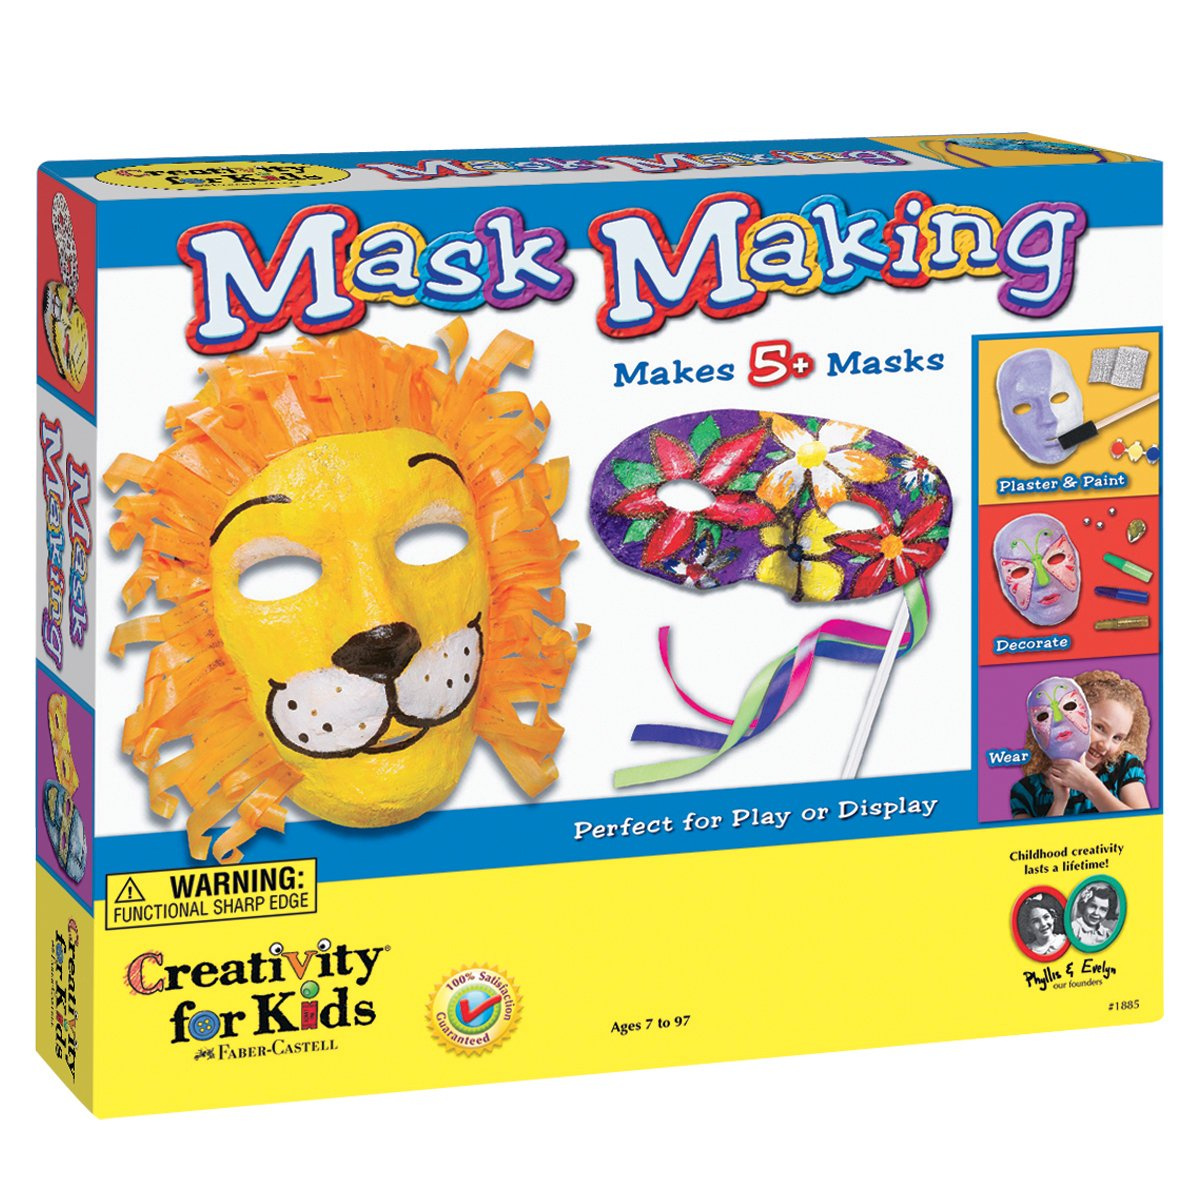 Plaster mask making kit for ages 7 plus